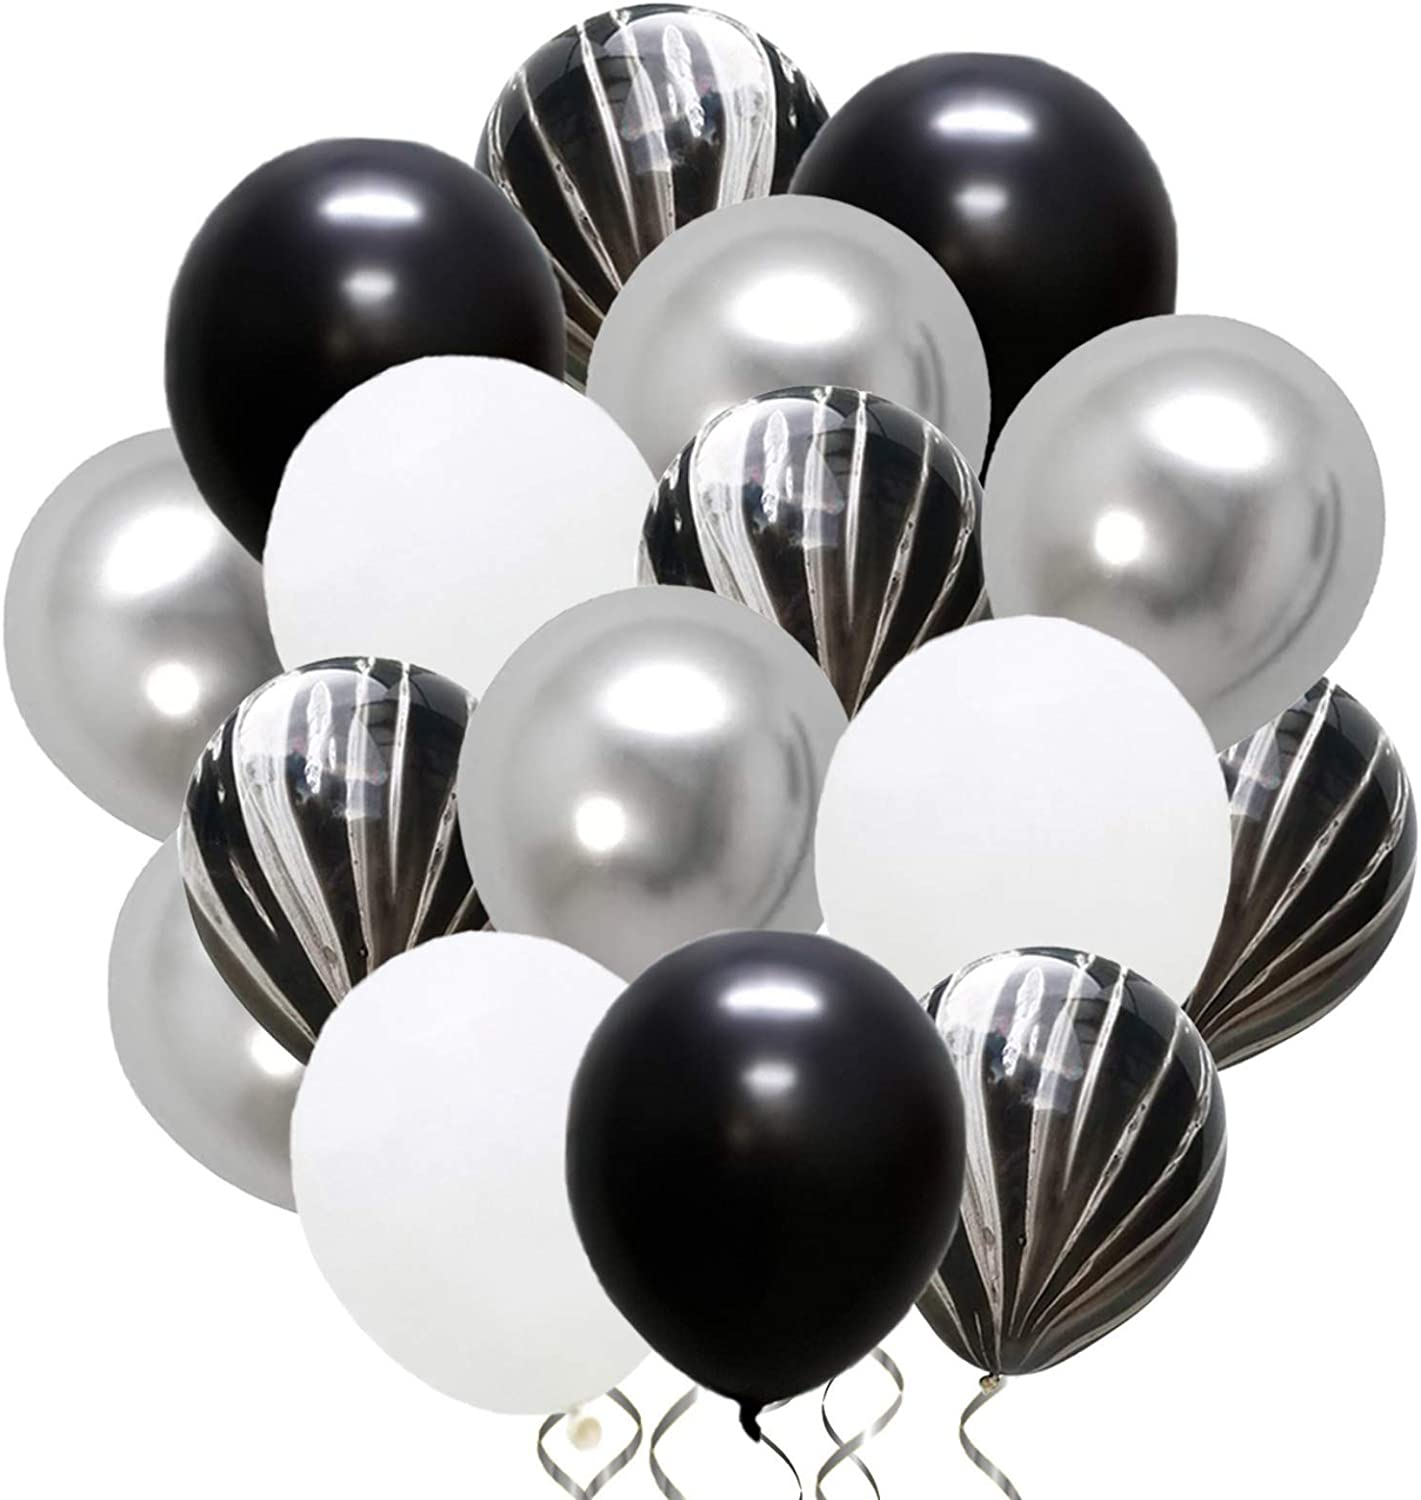 Marble Black and White Silver Party Set, 12 Inches 50 Pcs for Holiday Decoration Birthday Party Wedding Graduation Anniversary Bridal and Baby Latex Balloons, Set106